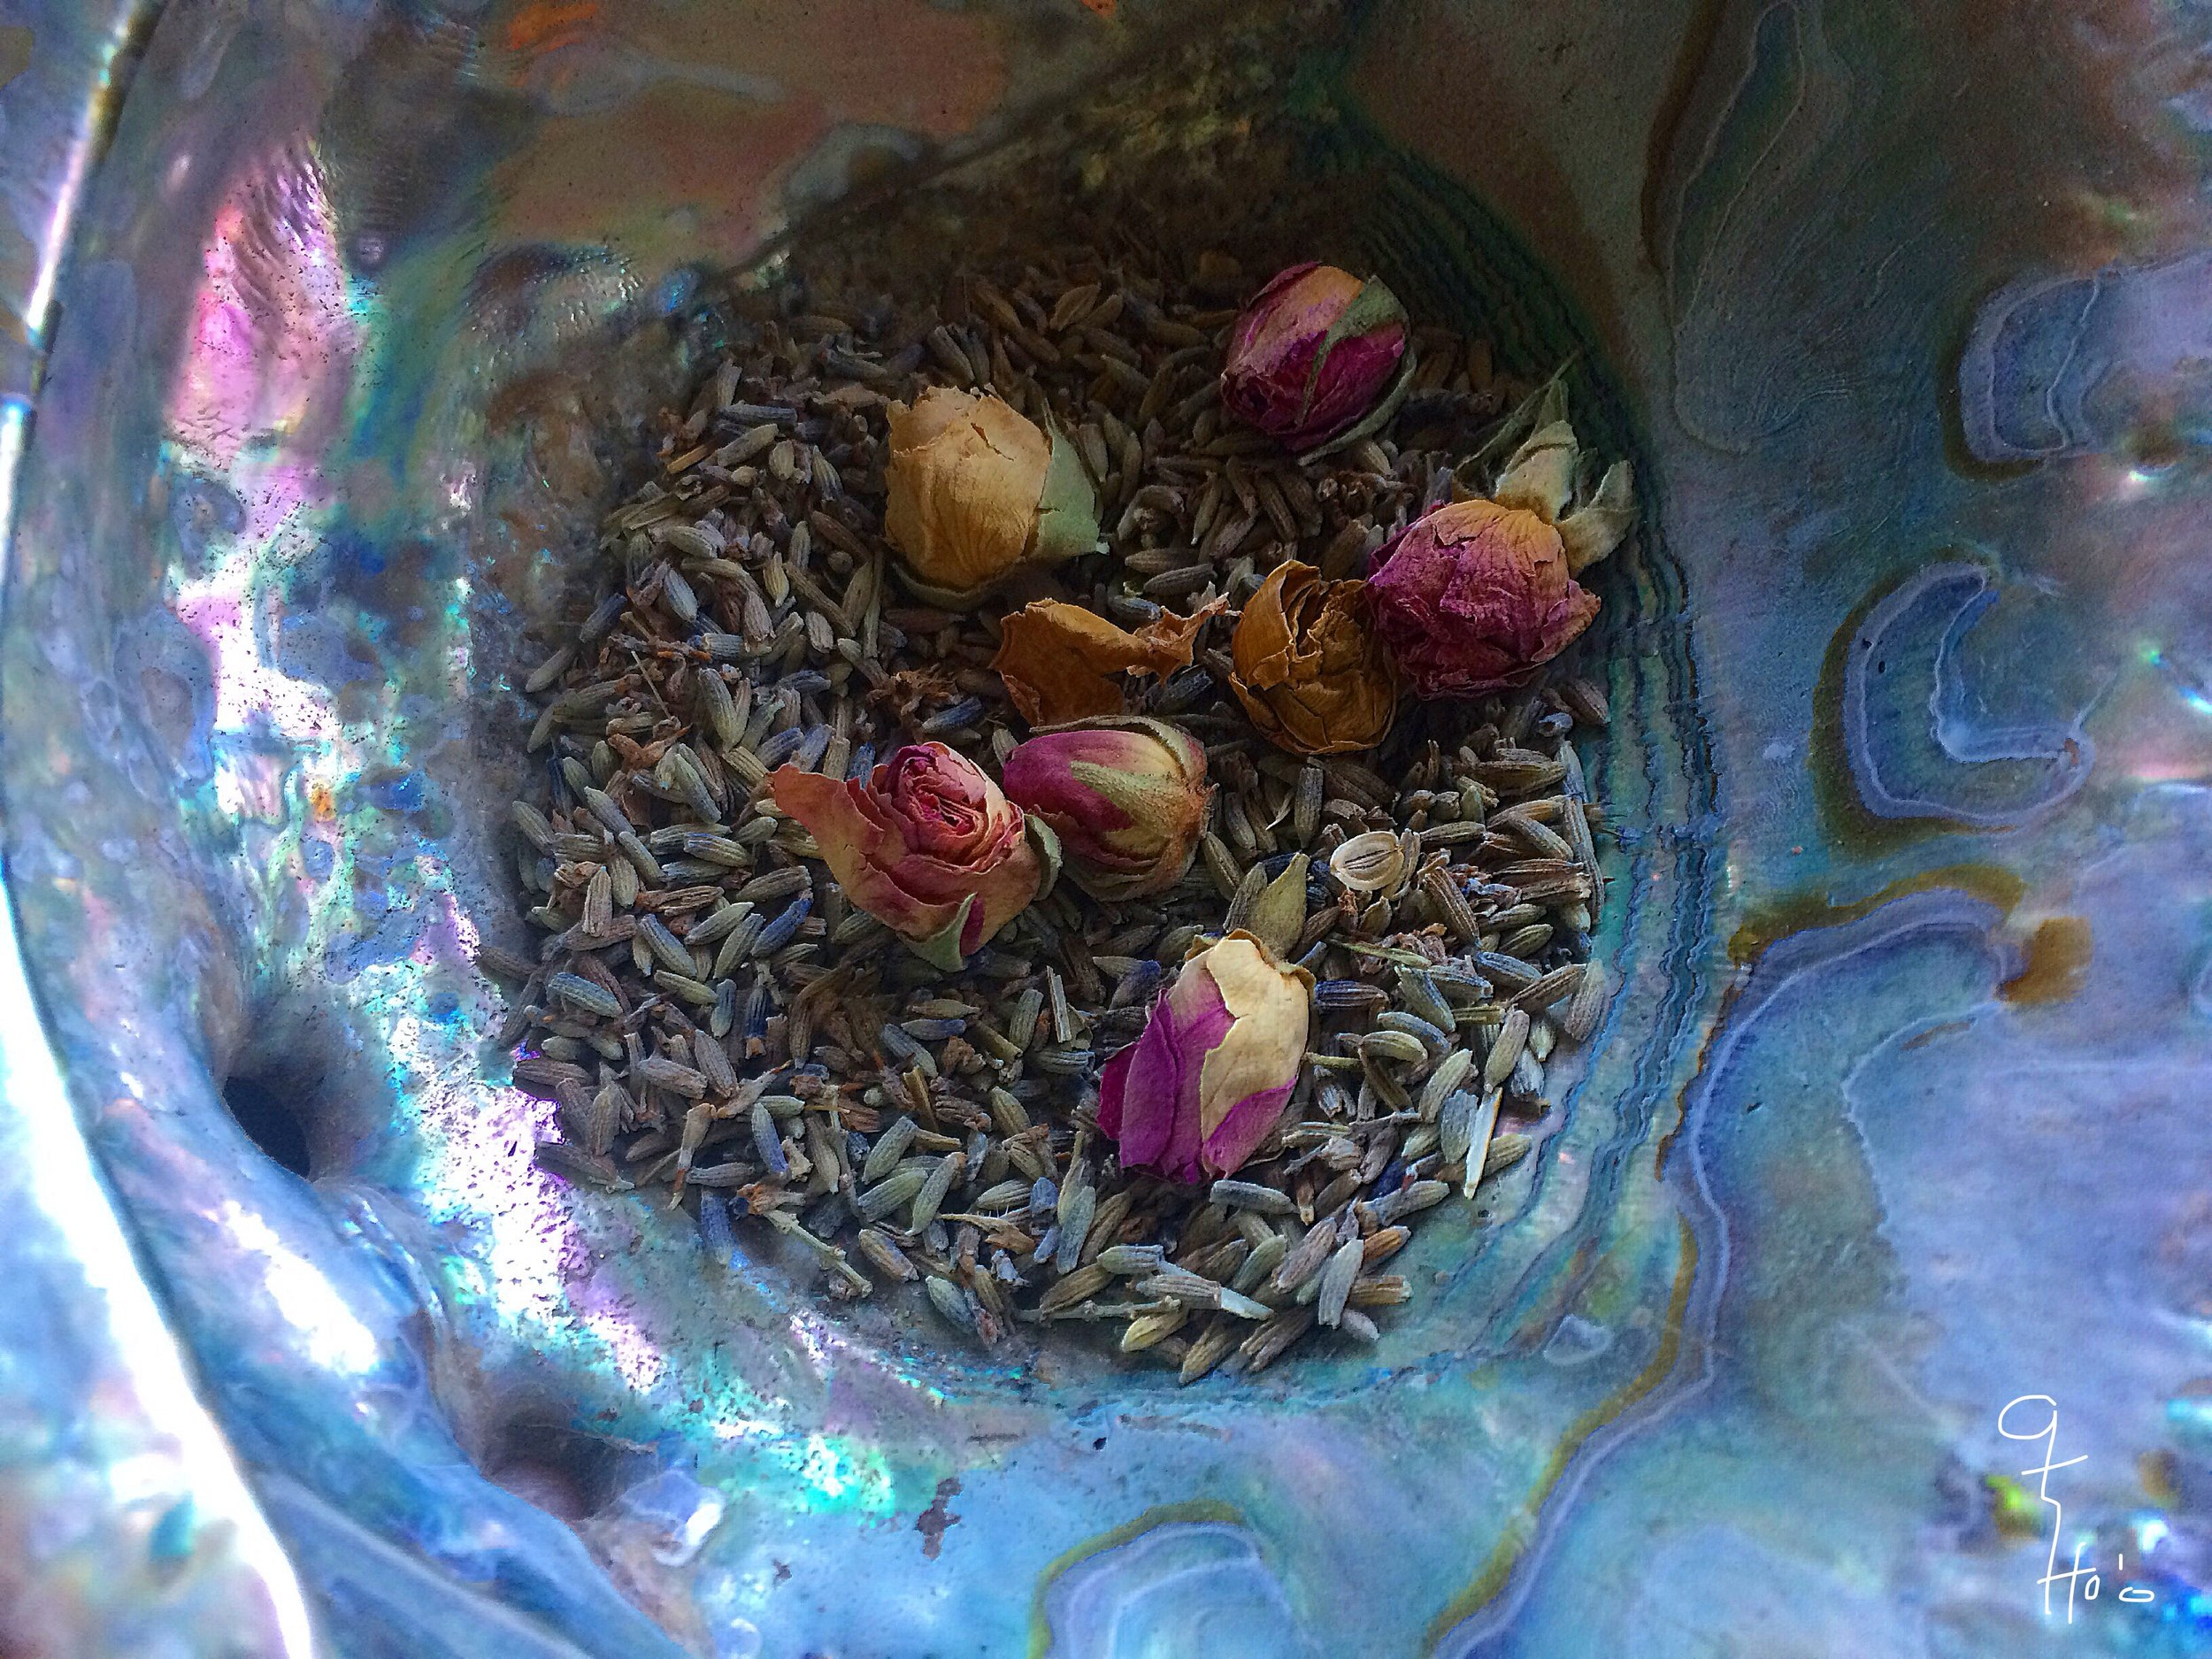 Lavender & baby roses, great for baths and more.